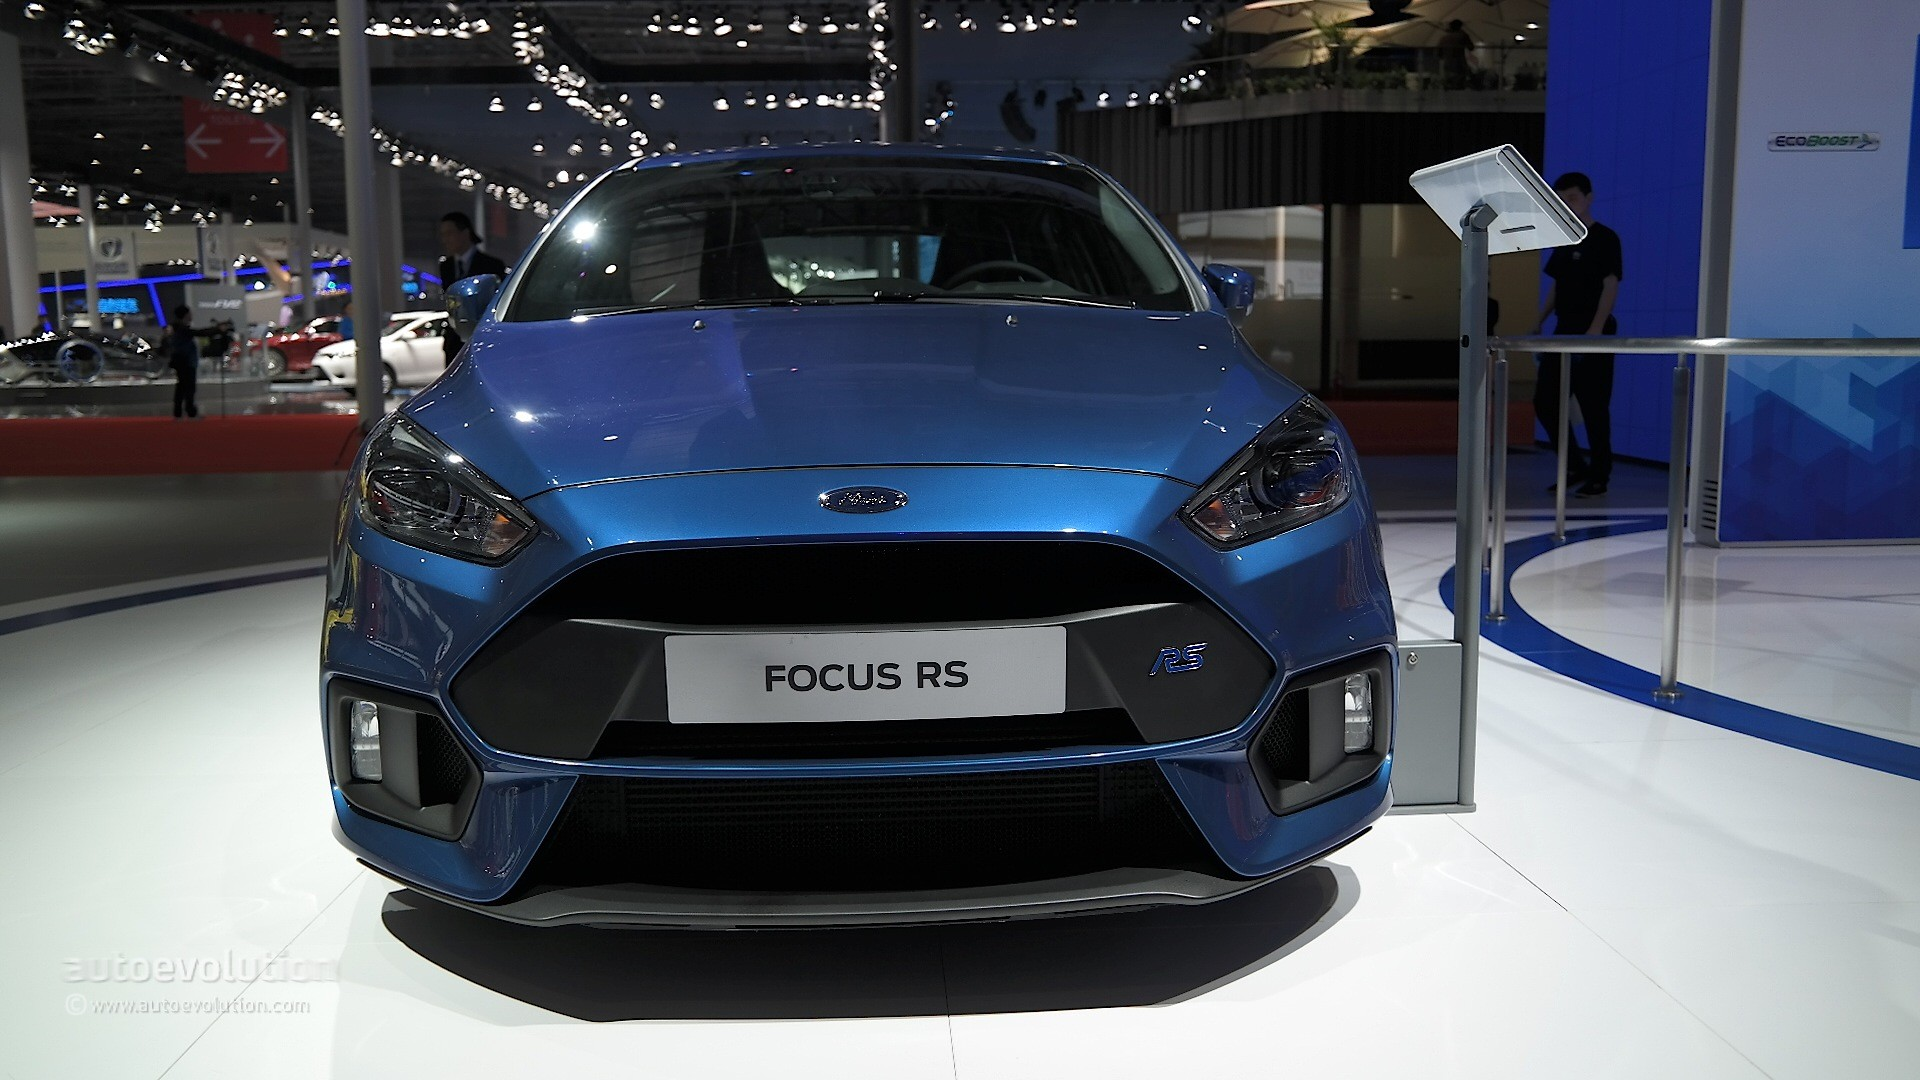 The 2016 Ford Focus RS Makes Chinese Debut at the Shanghai Auto Show